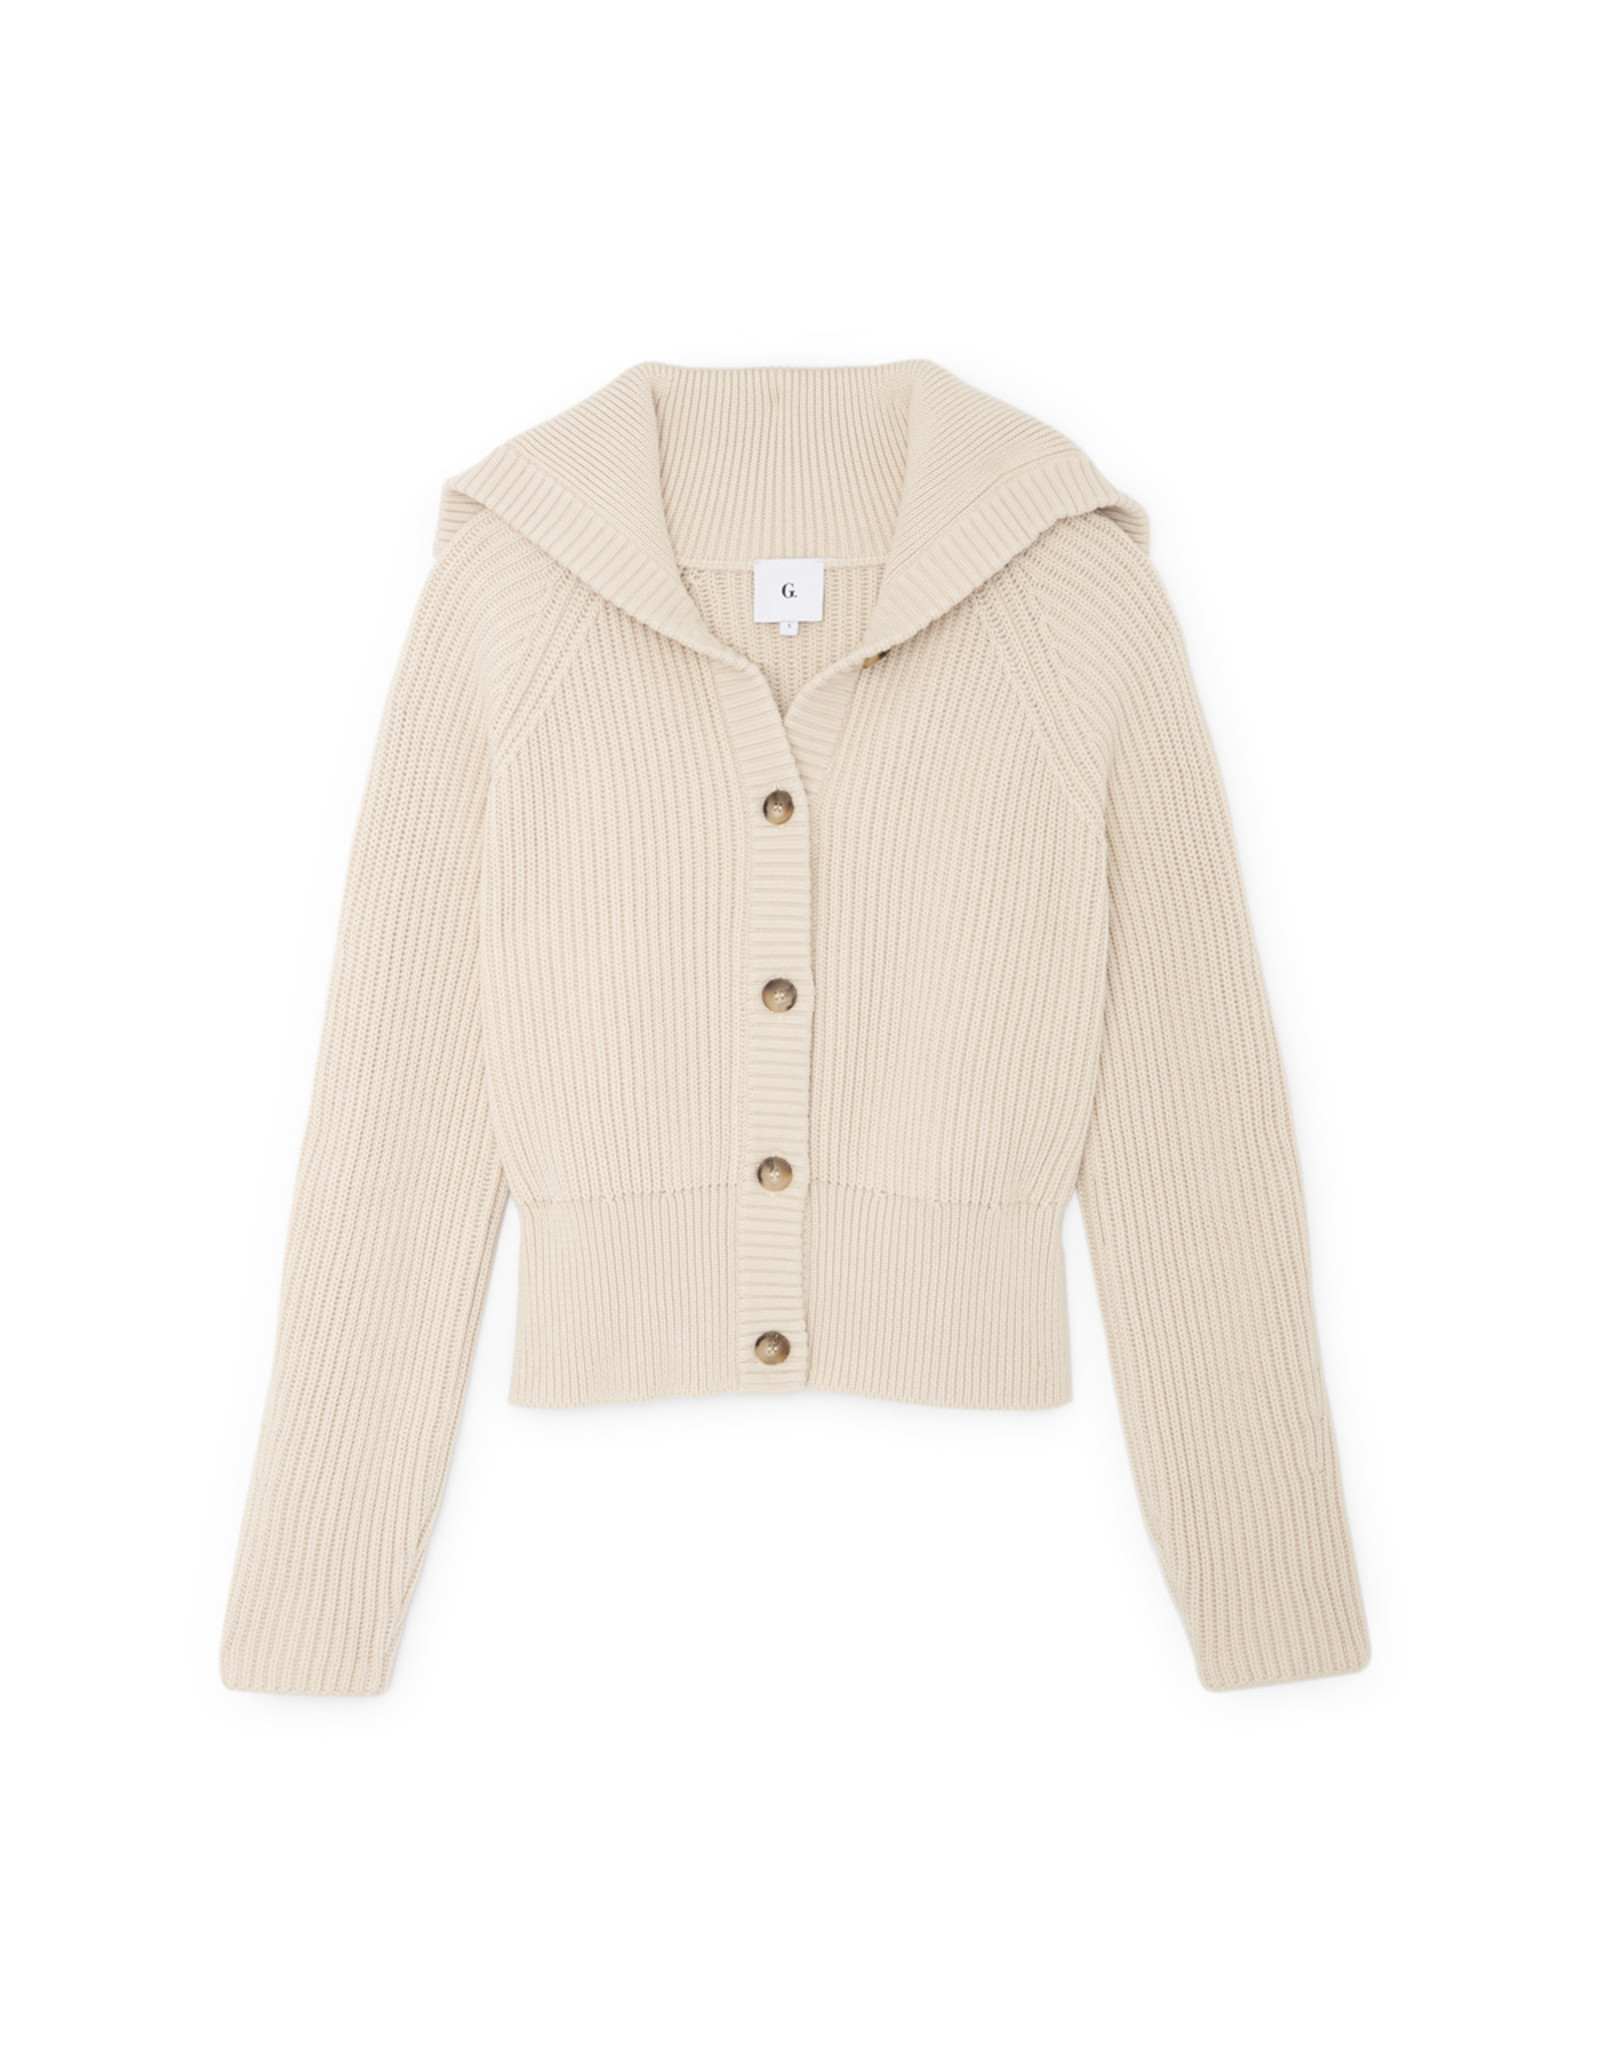 G. Label G. Label Bella Button Bomber Cardigan (Color: Ivory, Size: S)